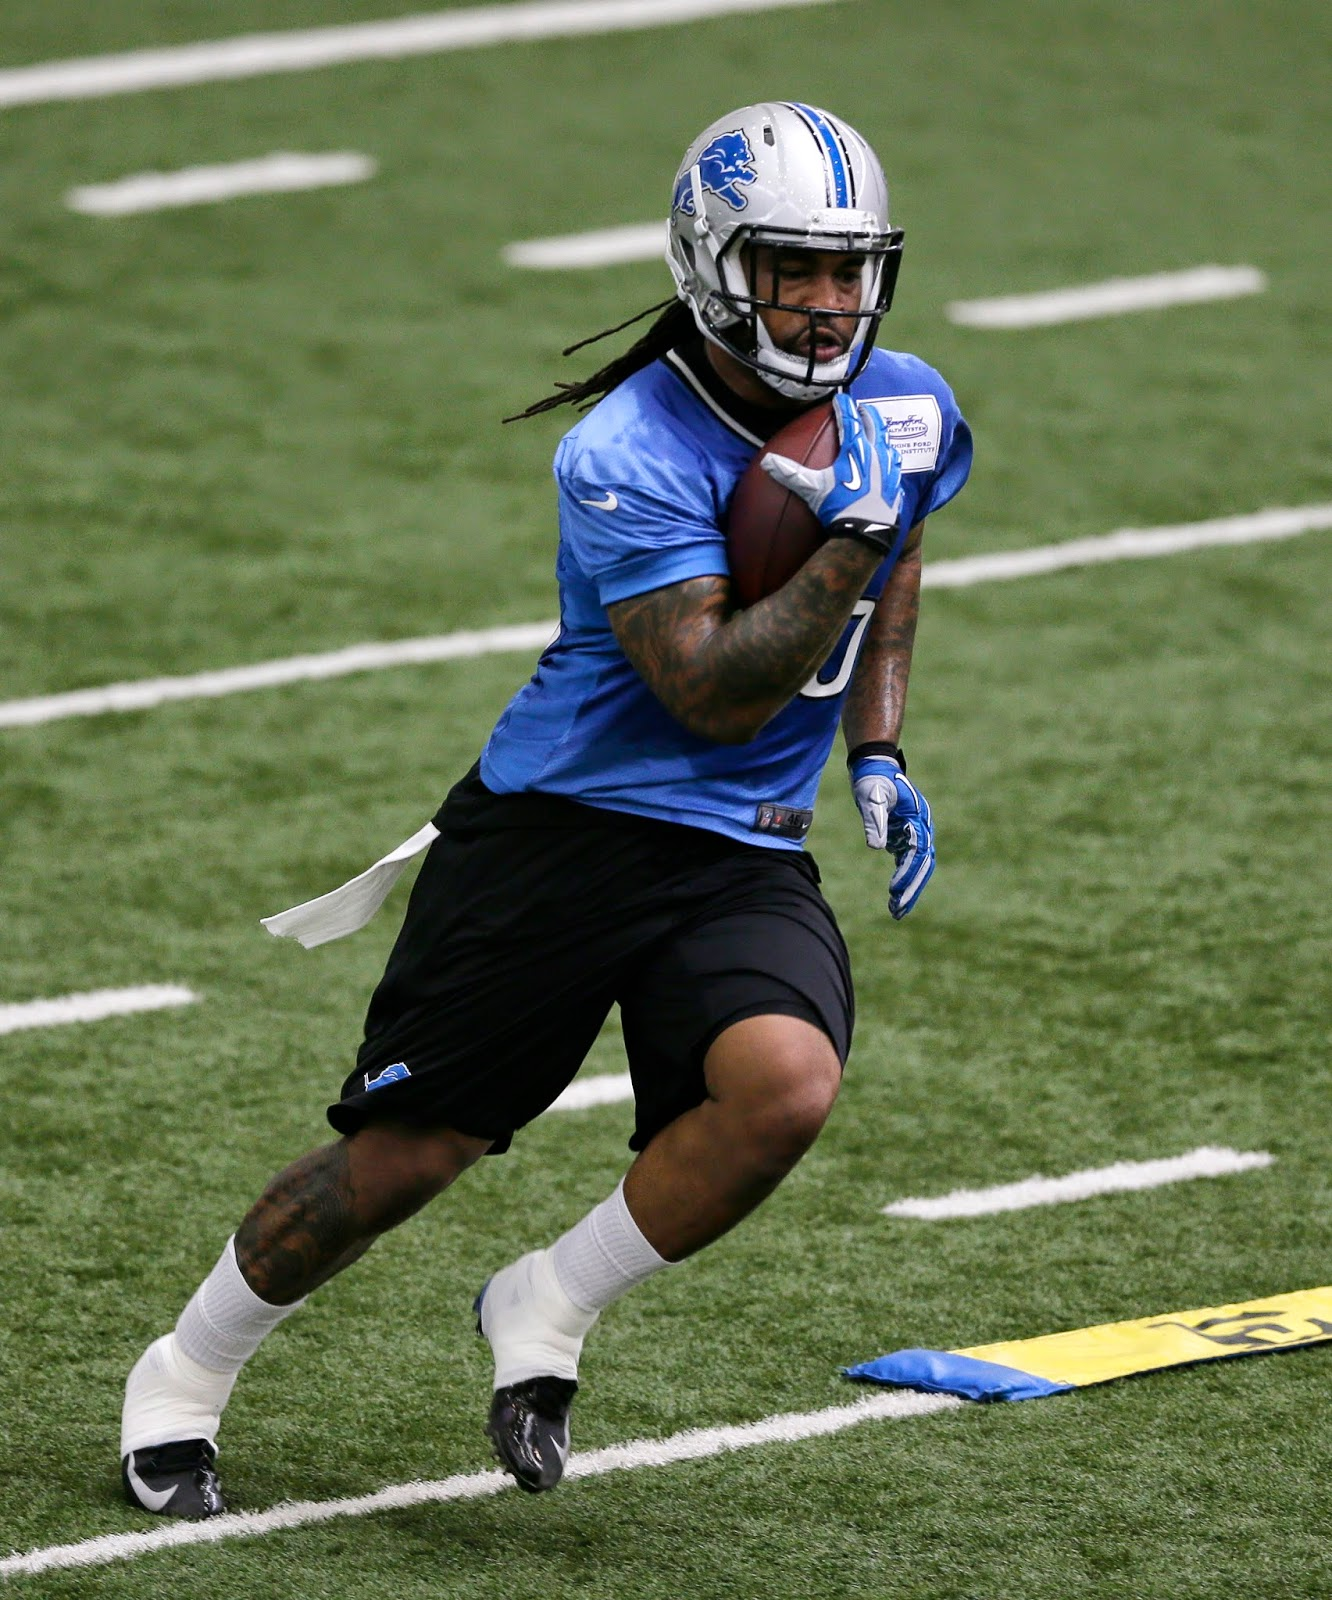 Detroit Lions — Running back by committee?